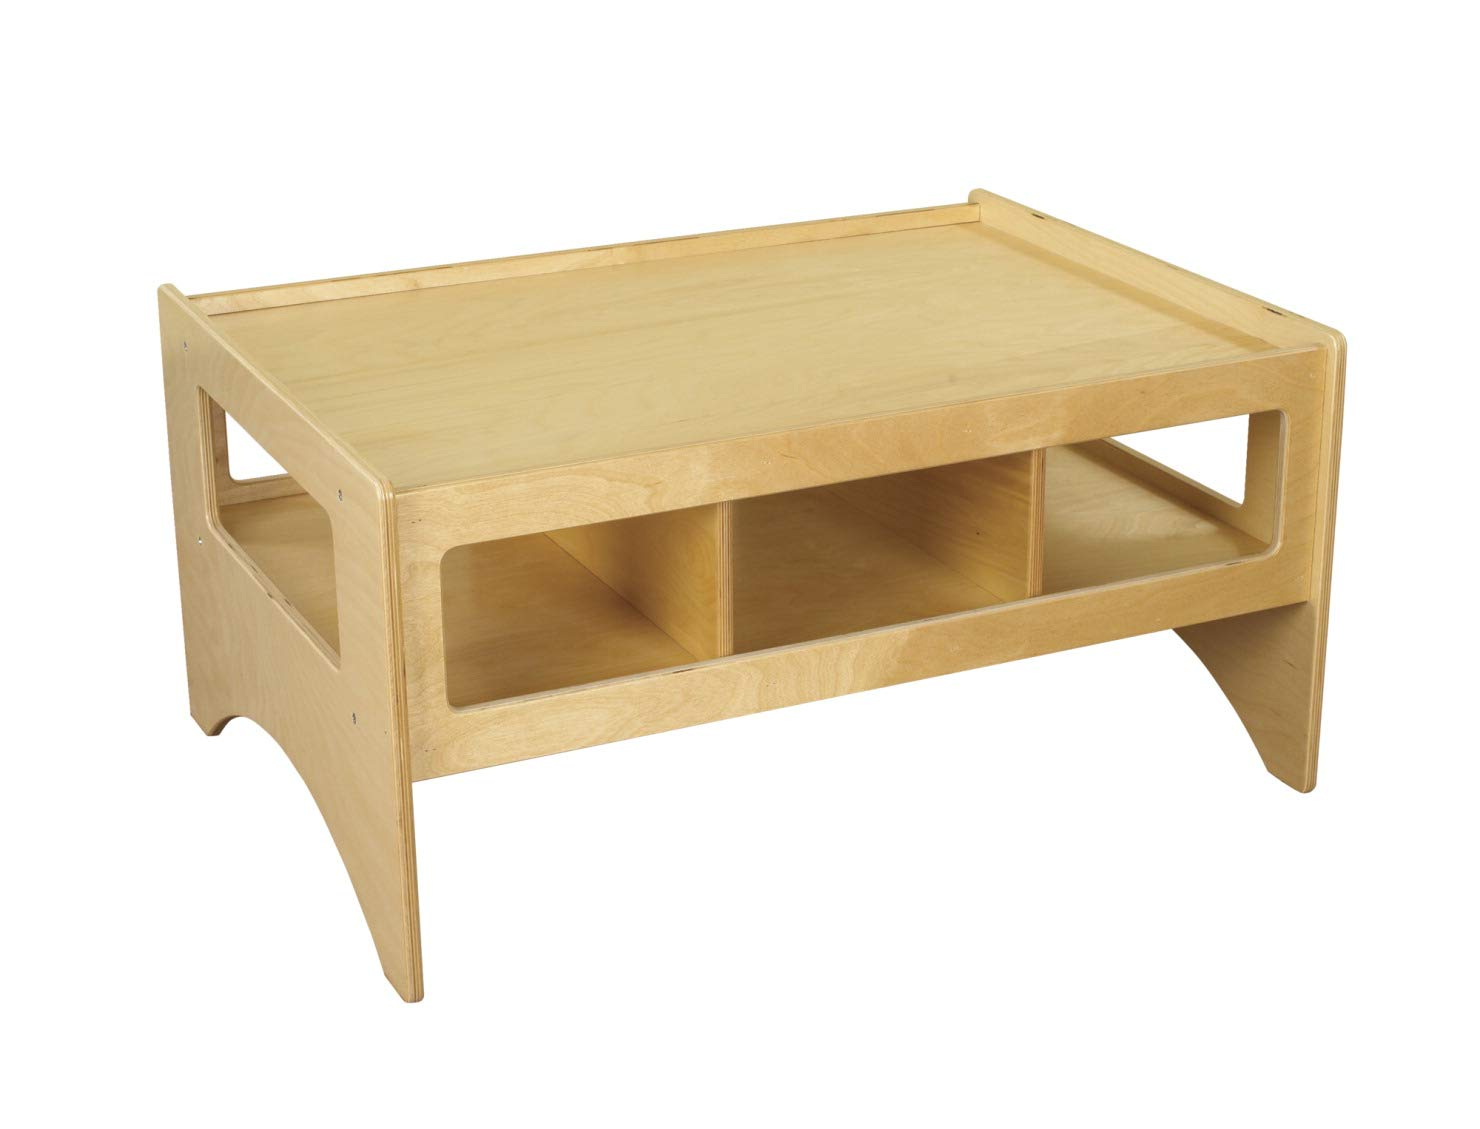 Childcraft 1464164 Multi-Purpose Play Table, Wood, 36'' x 26'' x 18'', Natural Wood Tone